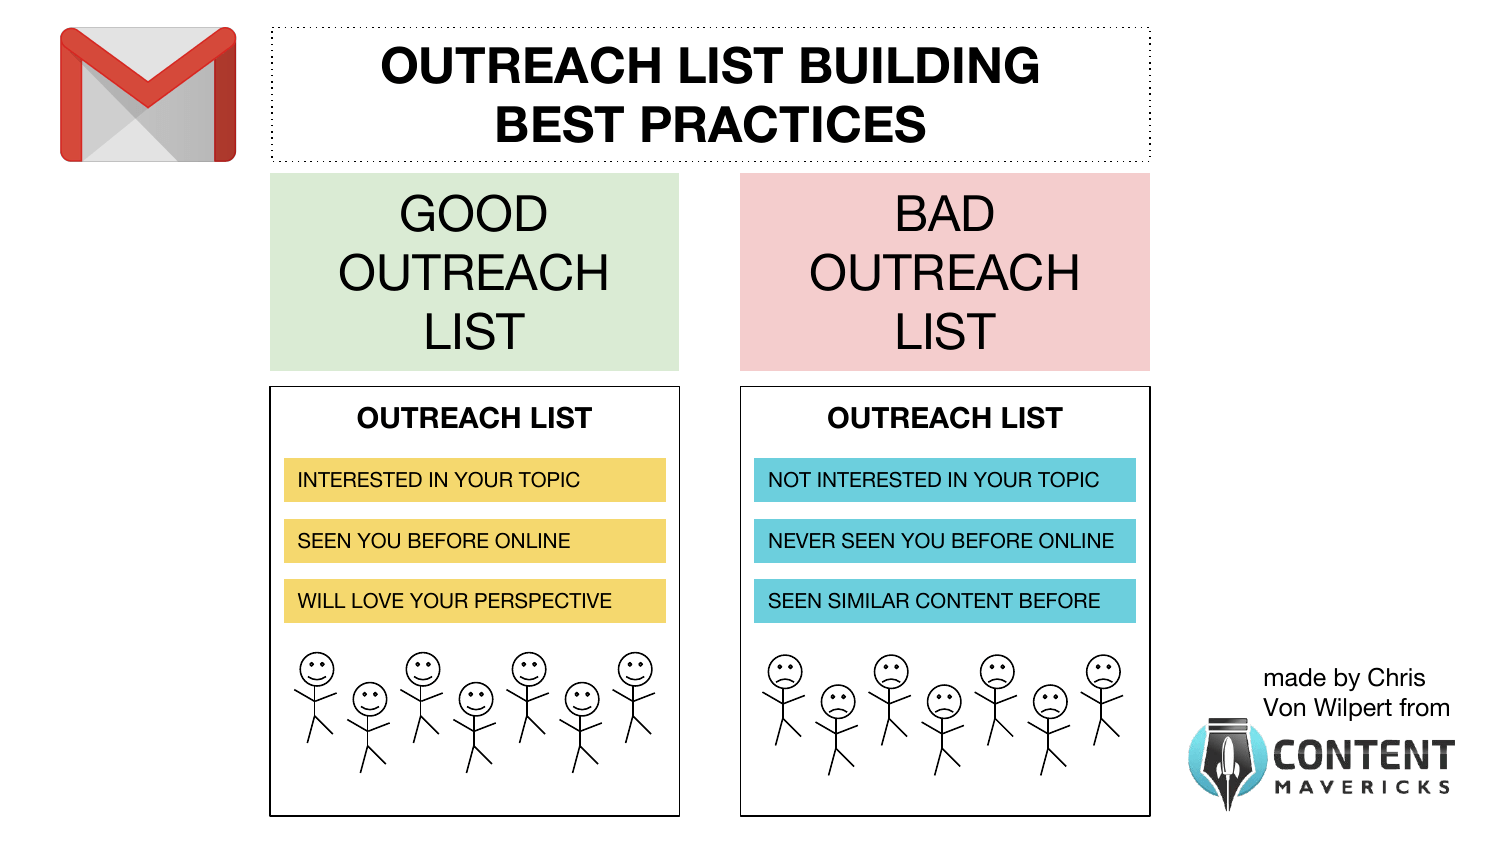 outreach list building best practices image